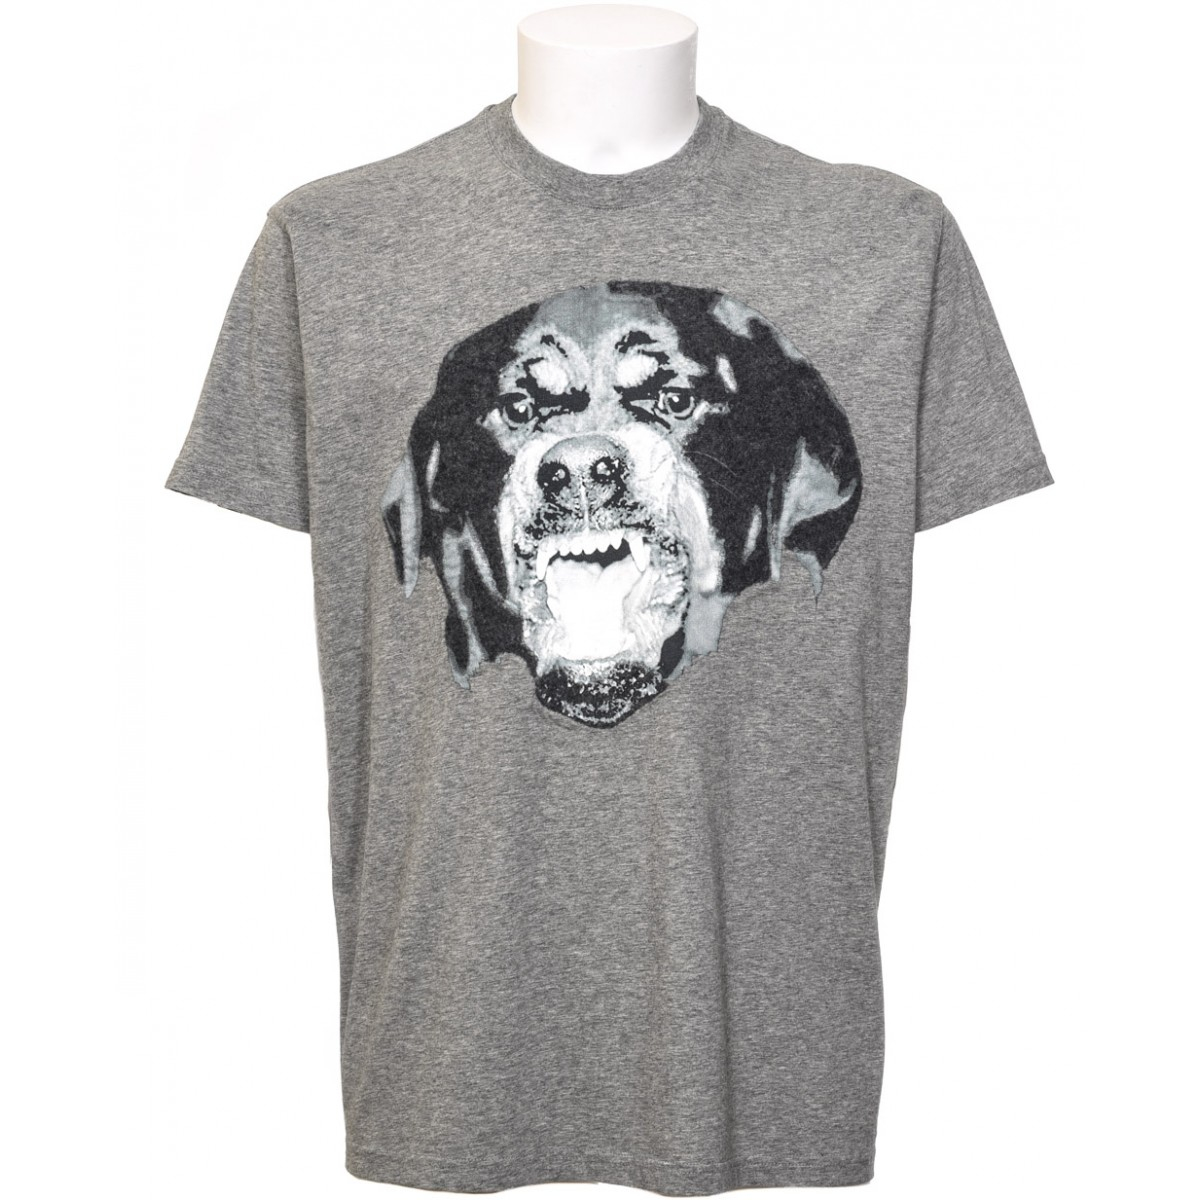 Givenchy Rotweiler T Shirt In Gray For Men Lyst